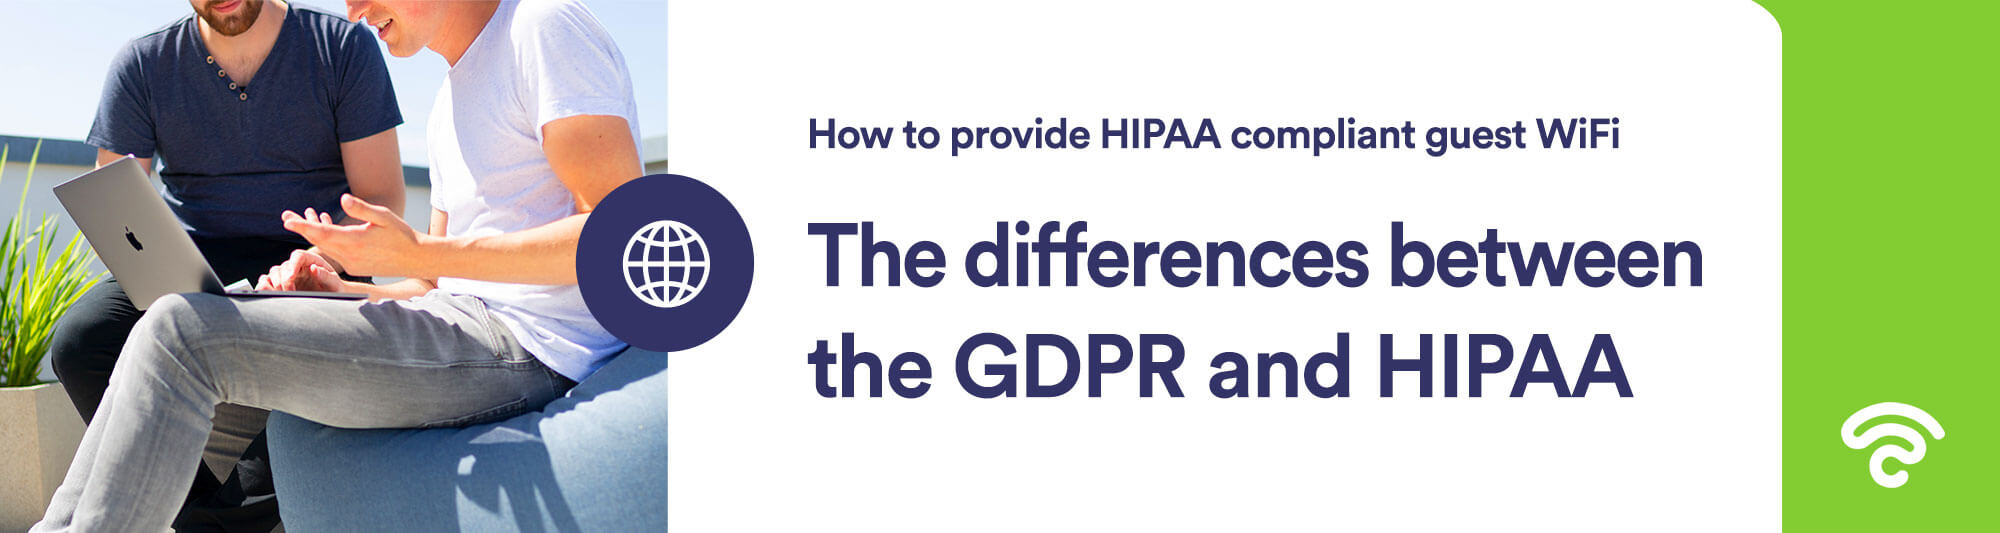 difference between gdpr and hipaa